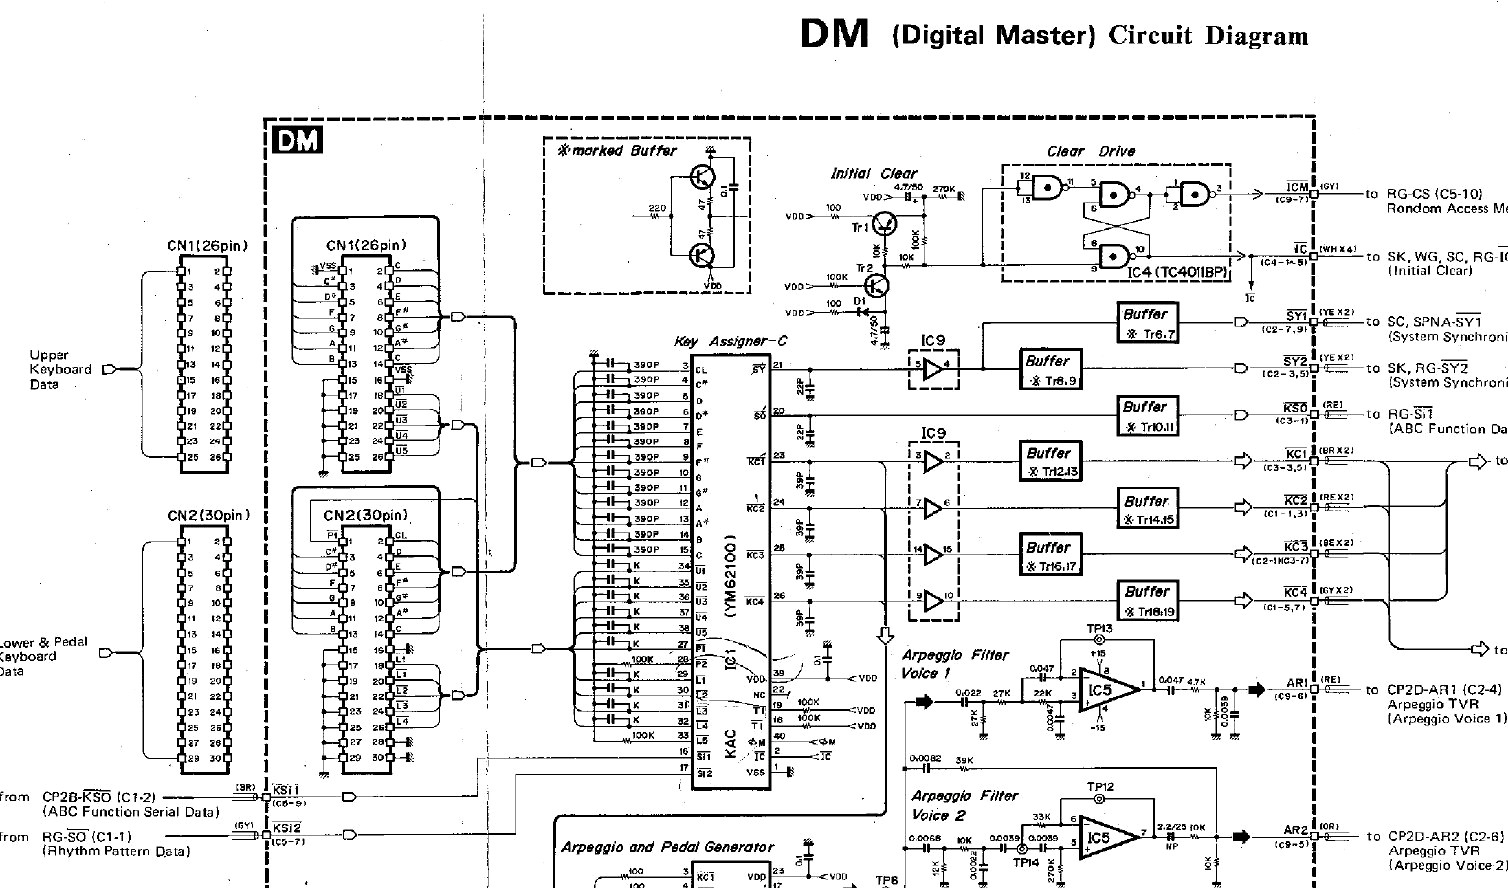 asco 300 wiring diagram - asco series 300 wiring diagram new diagram water  dual element for